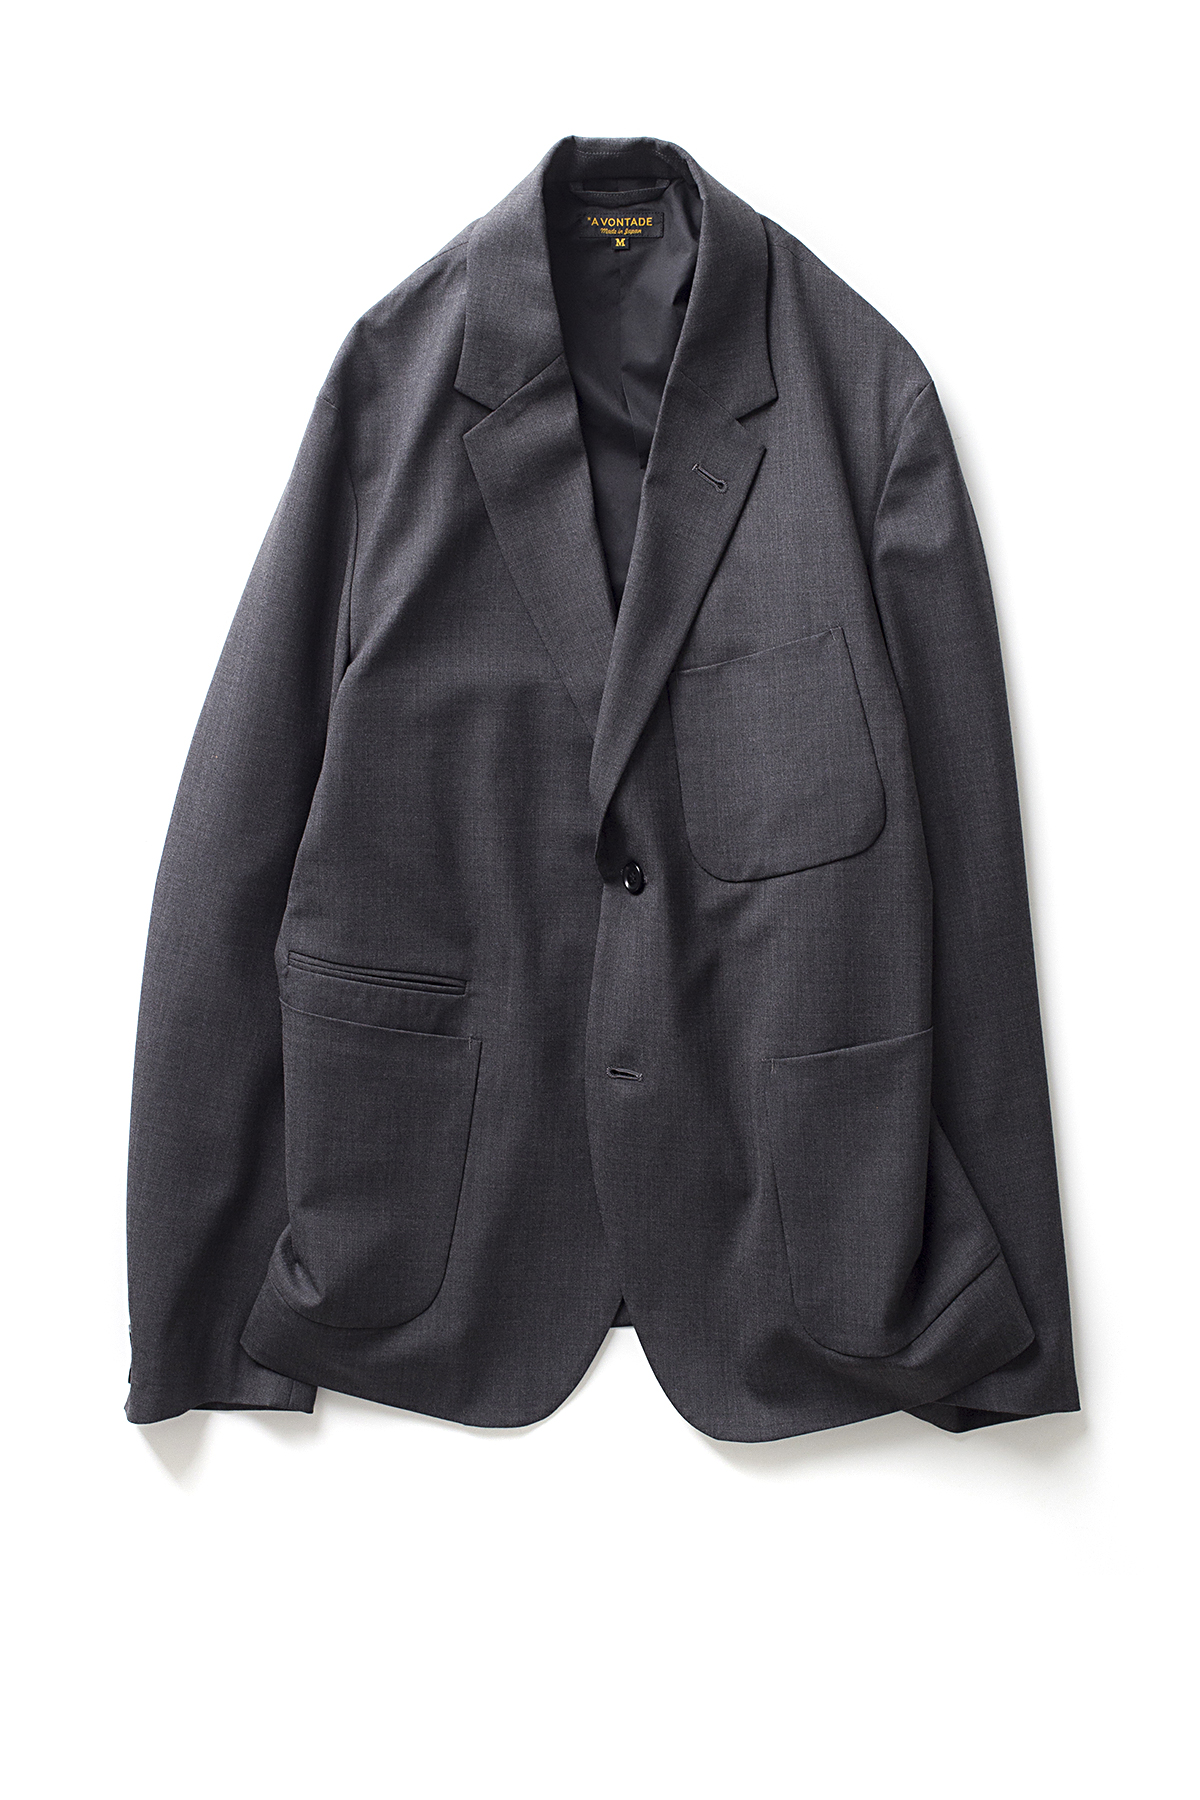 A vontade : Lounge Jacket (Charcoal)